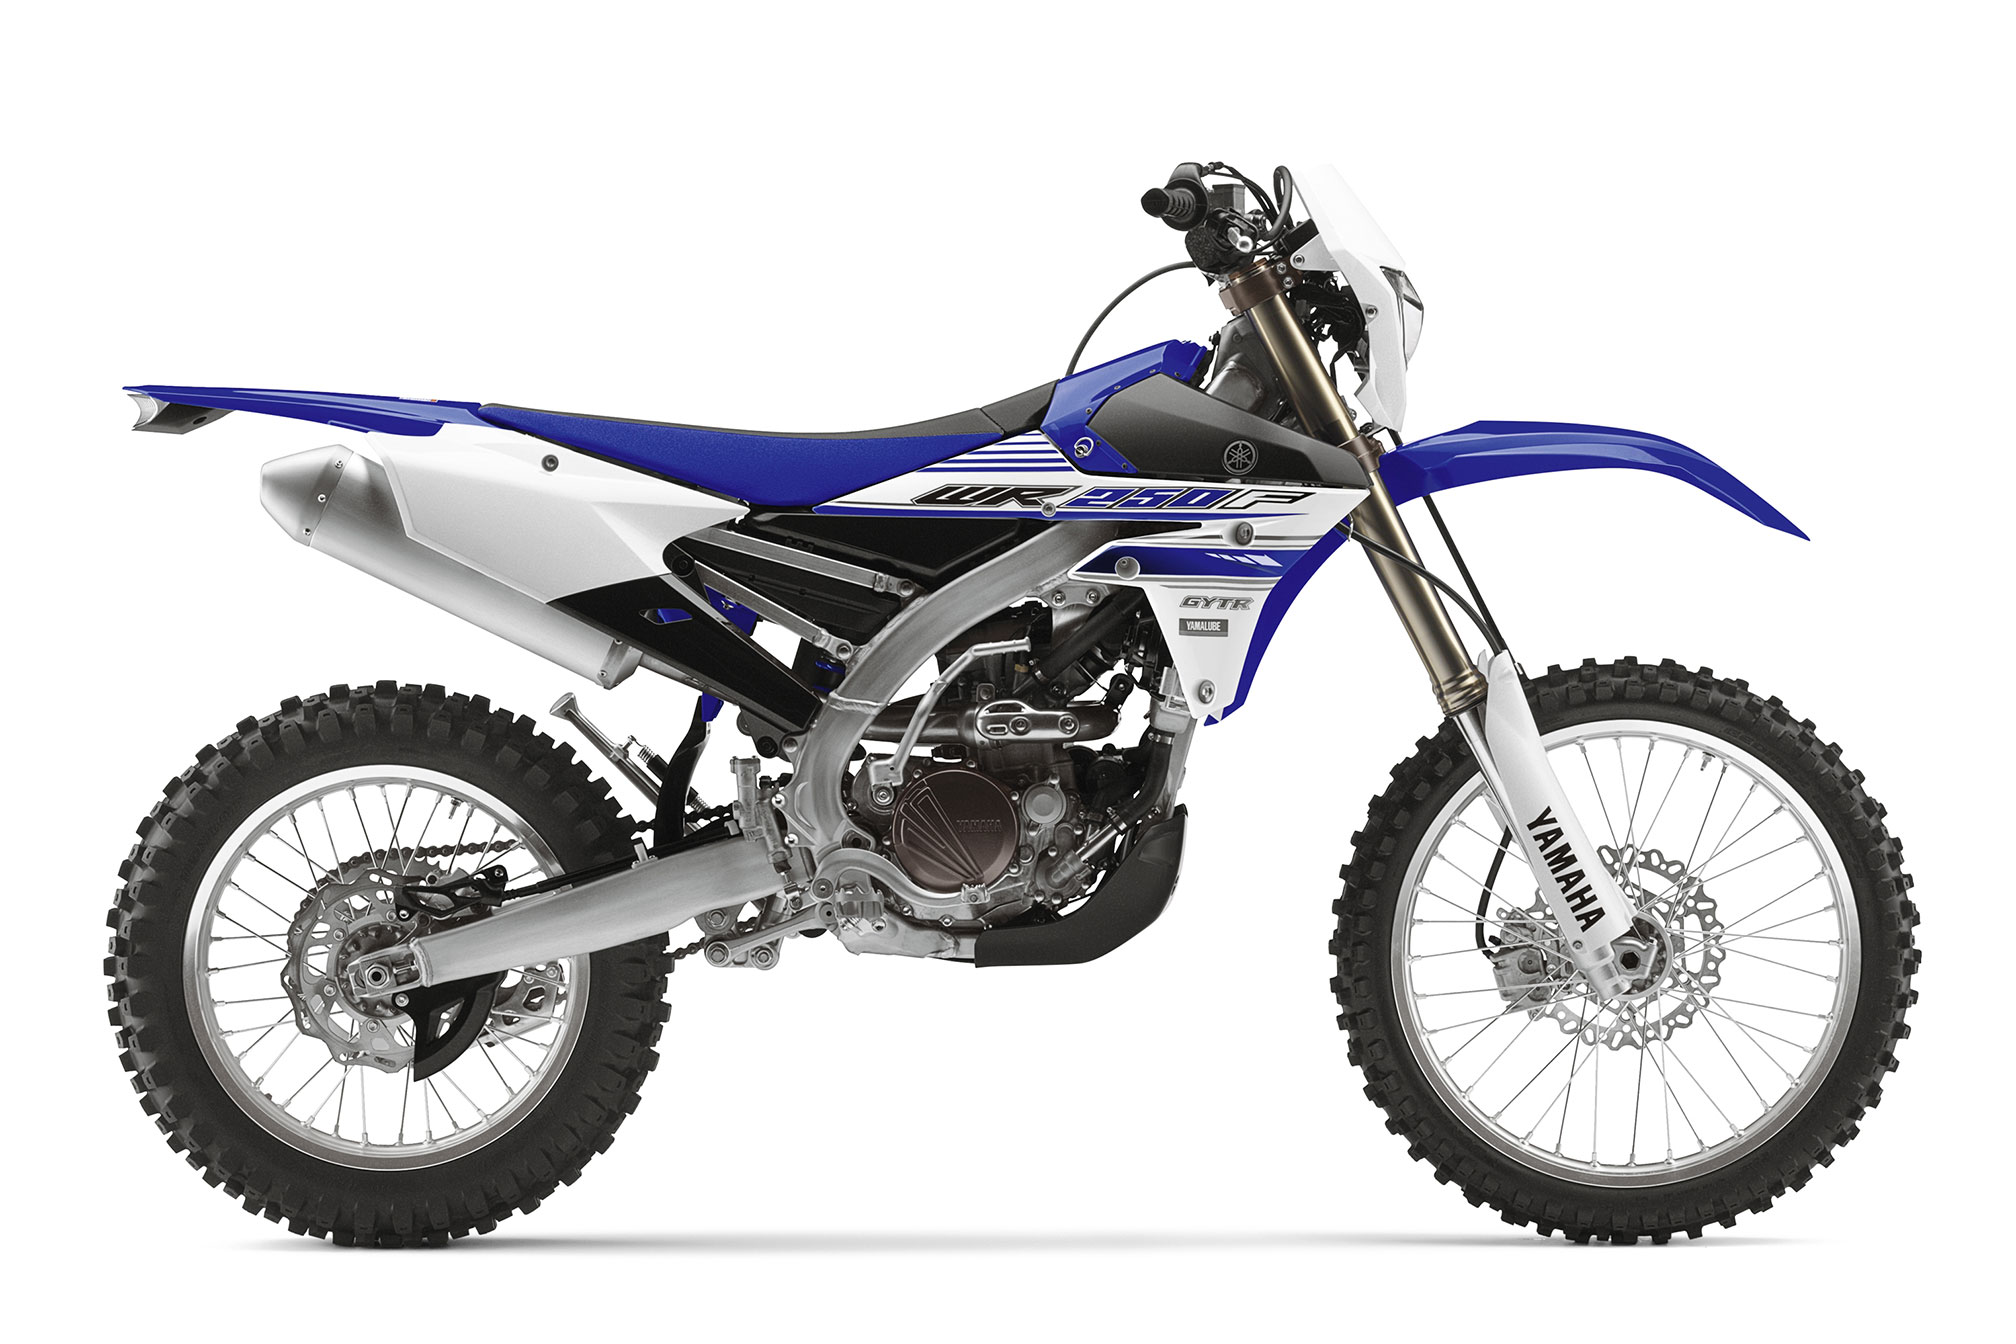 2013 Yamaha WR250F motorcycle photos, specifications